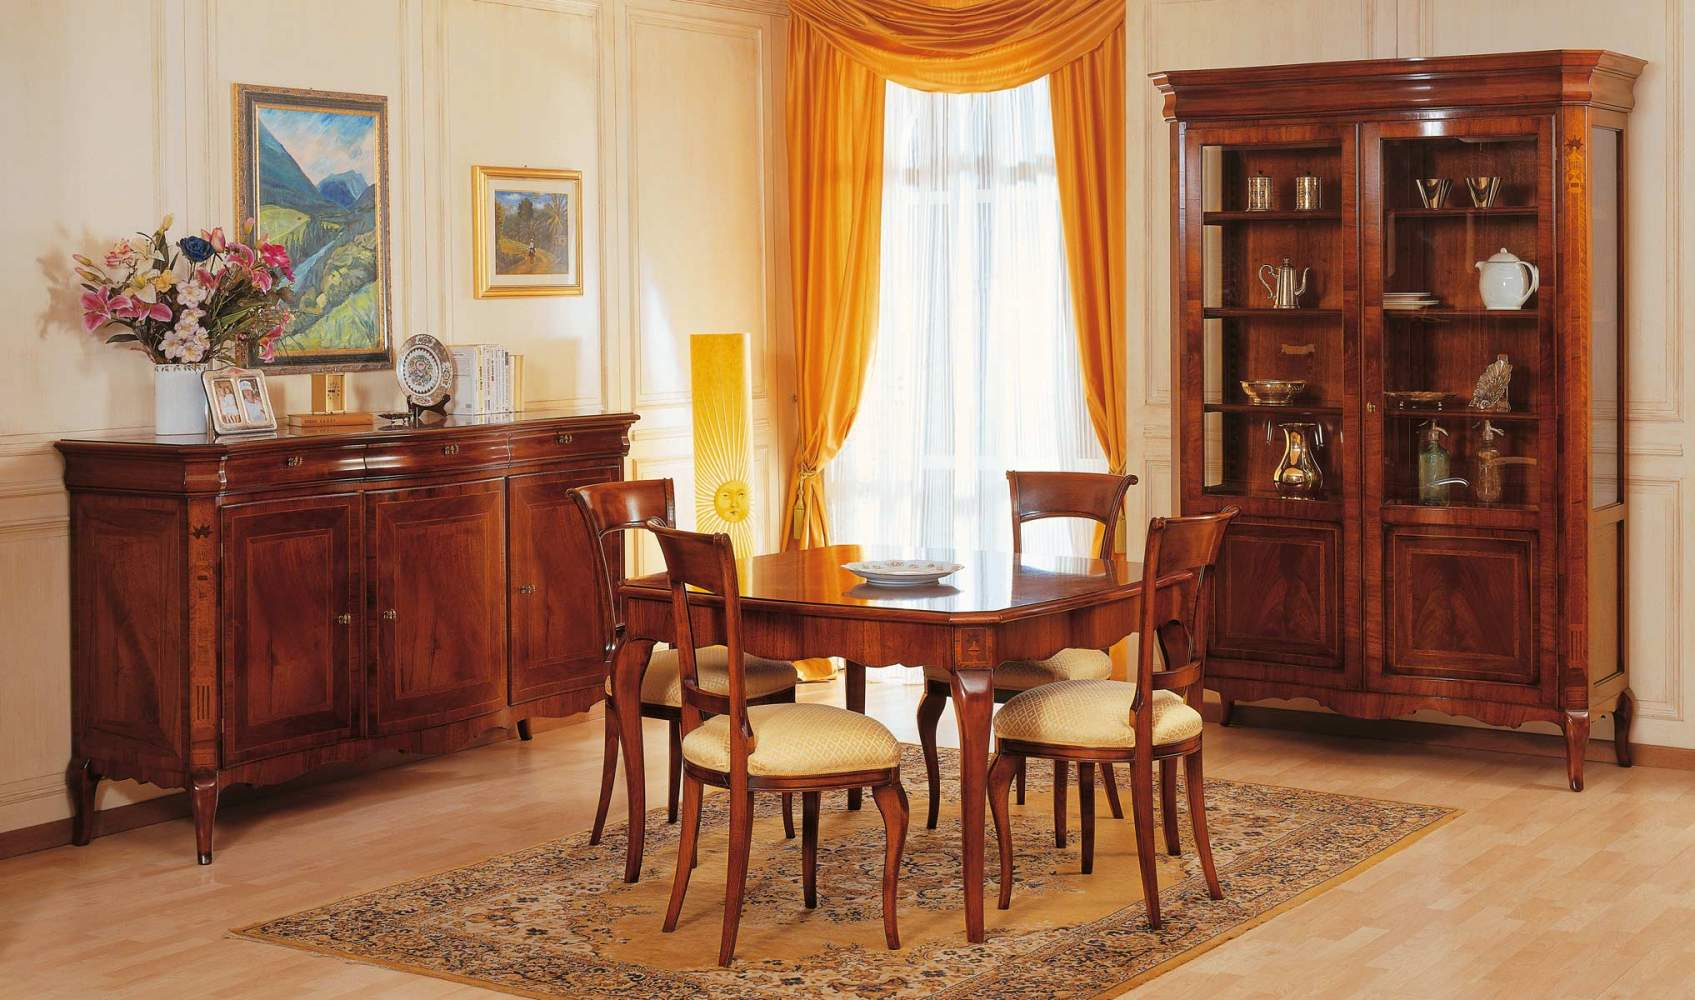 Dining room in 19th century french style vimercati for Mobili classici